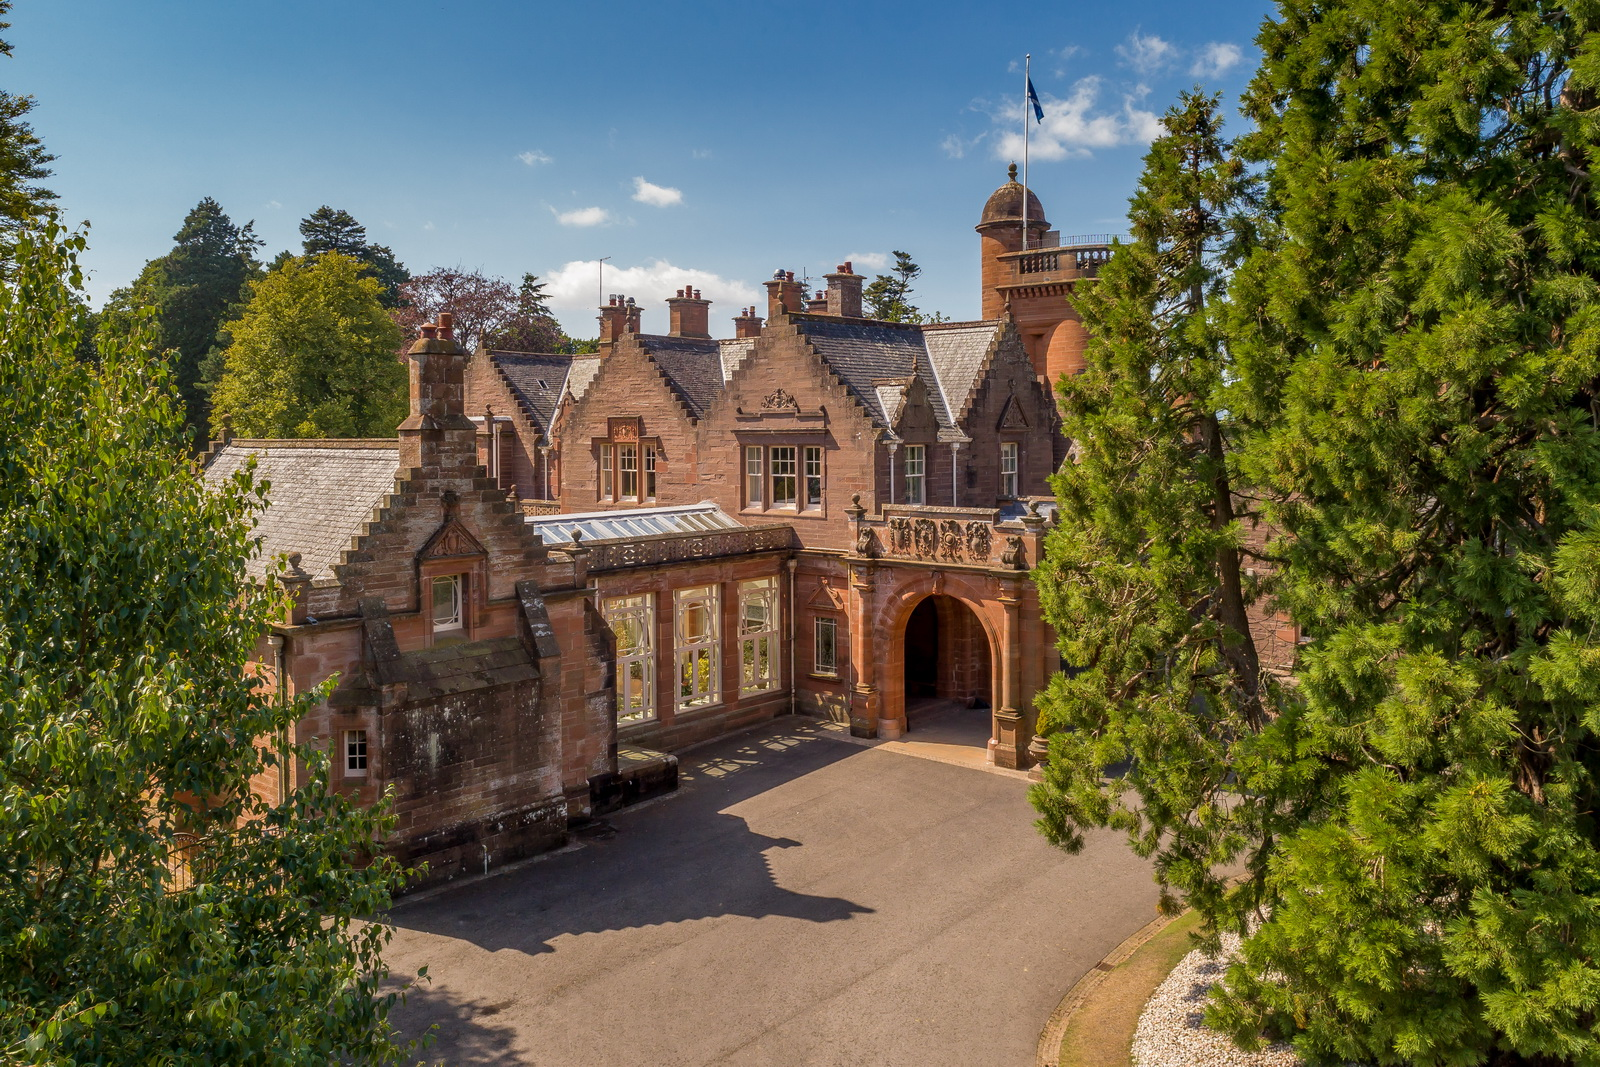 Auchterarder House from the air